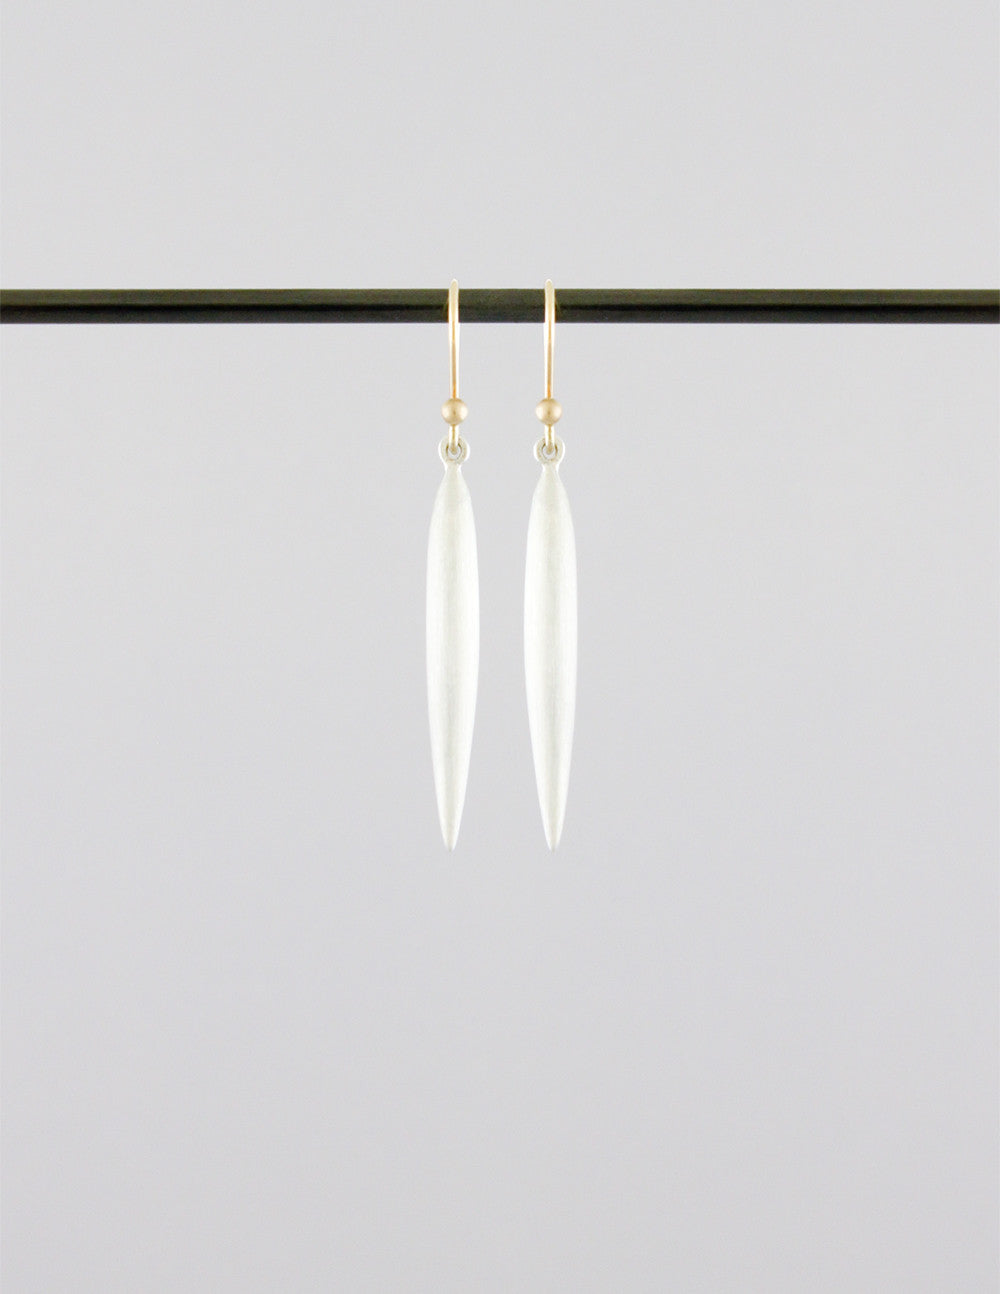 Large Silver Rice Earrings